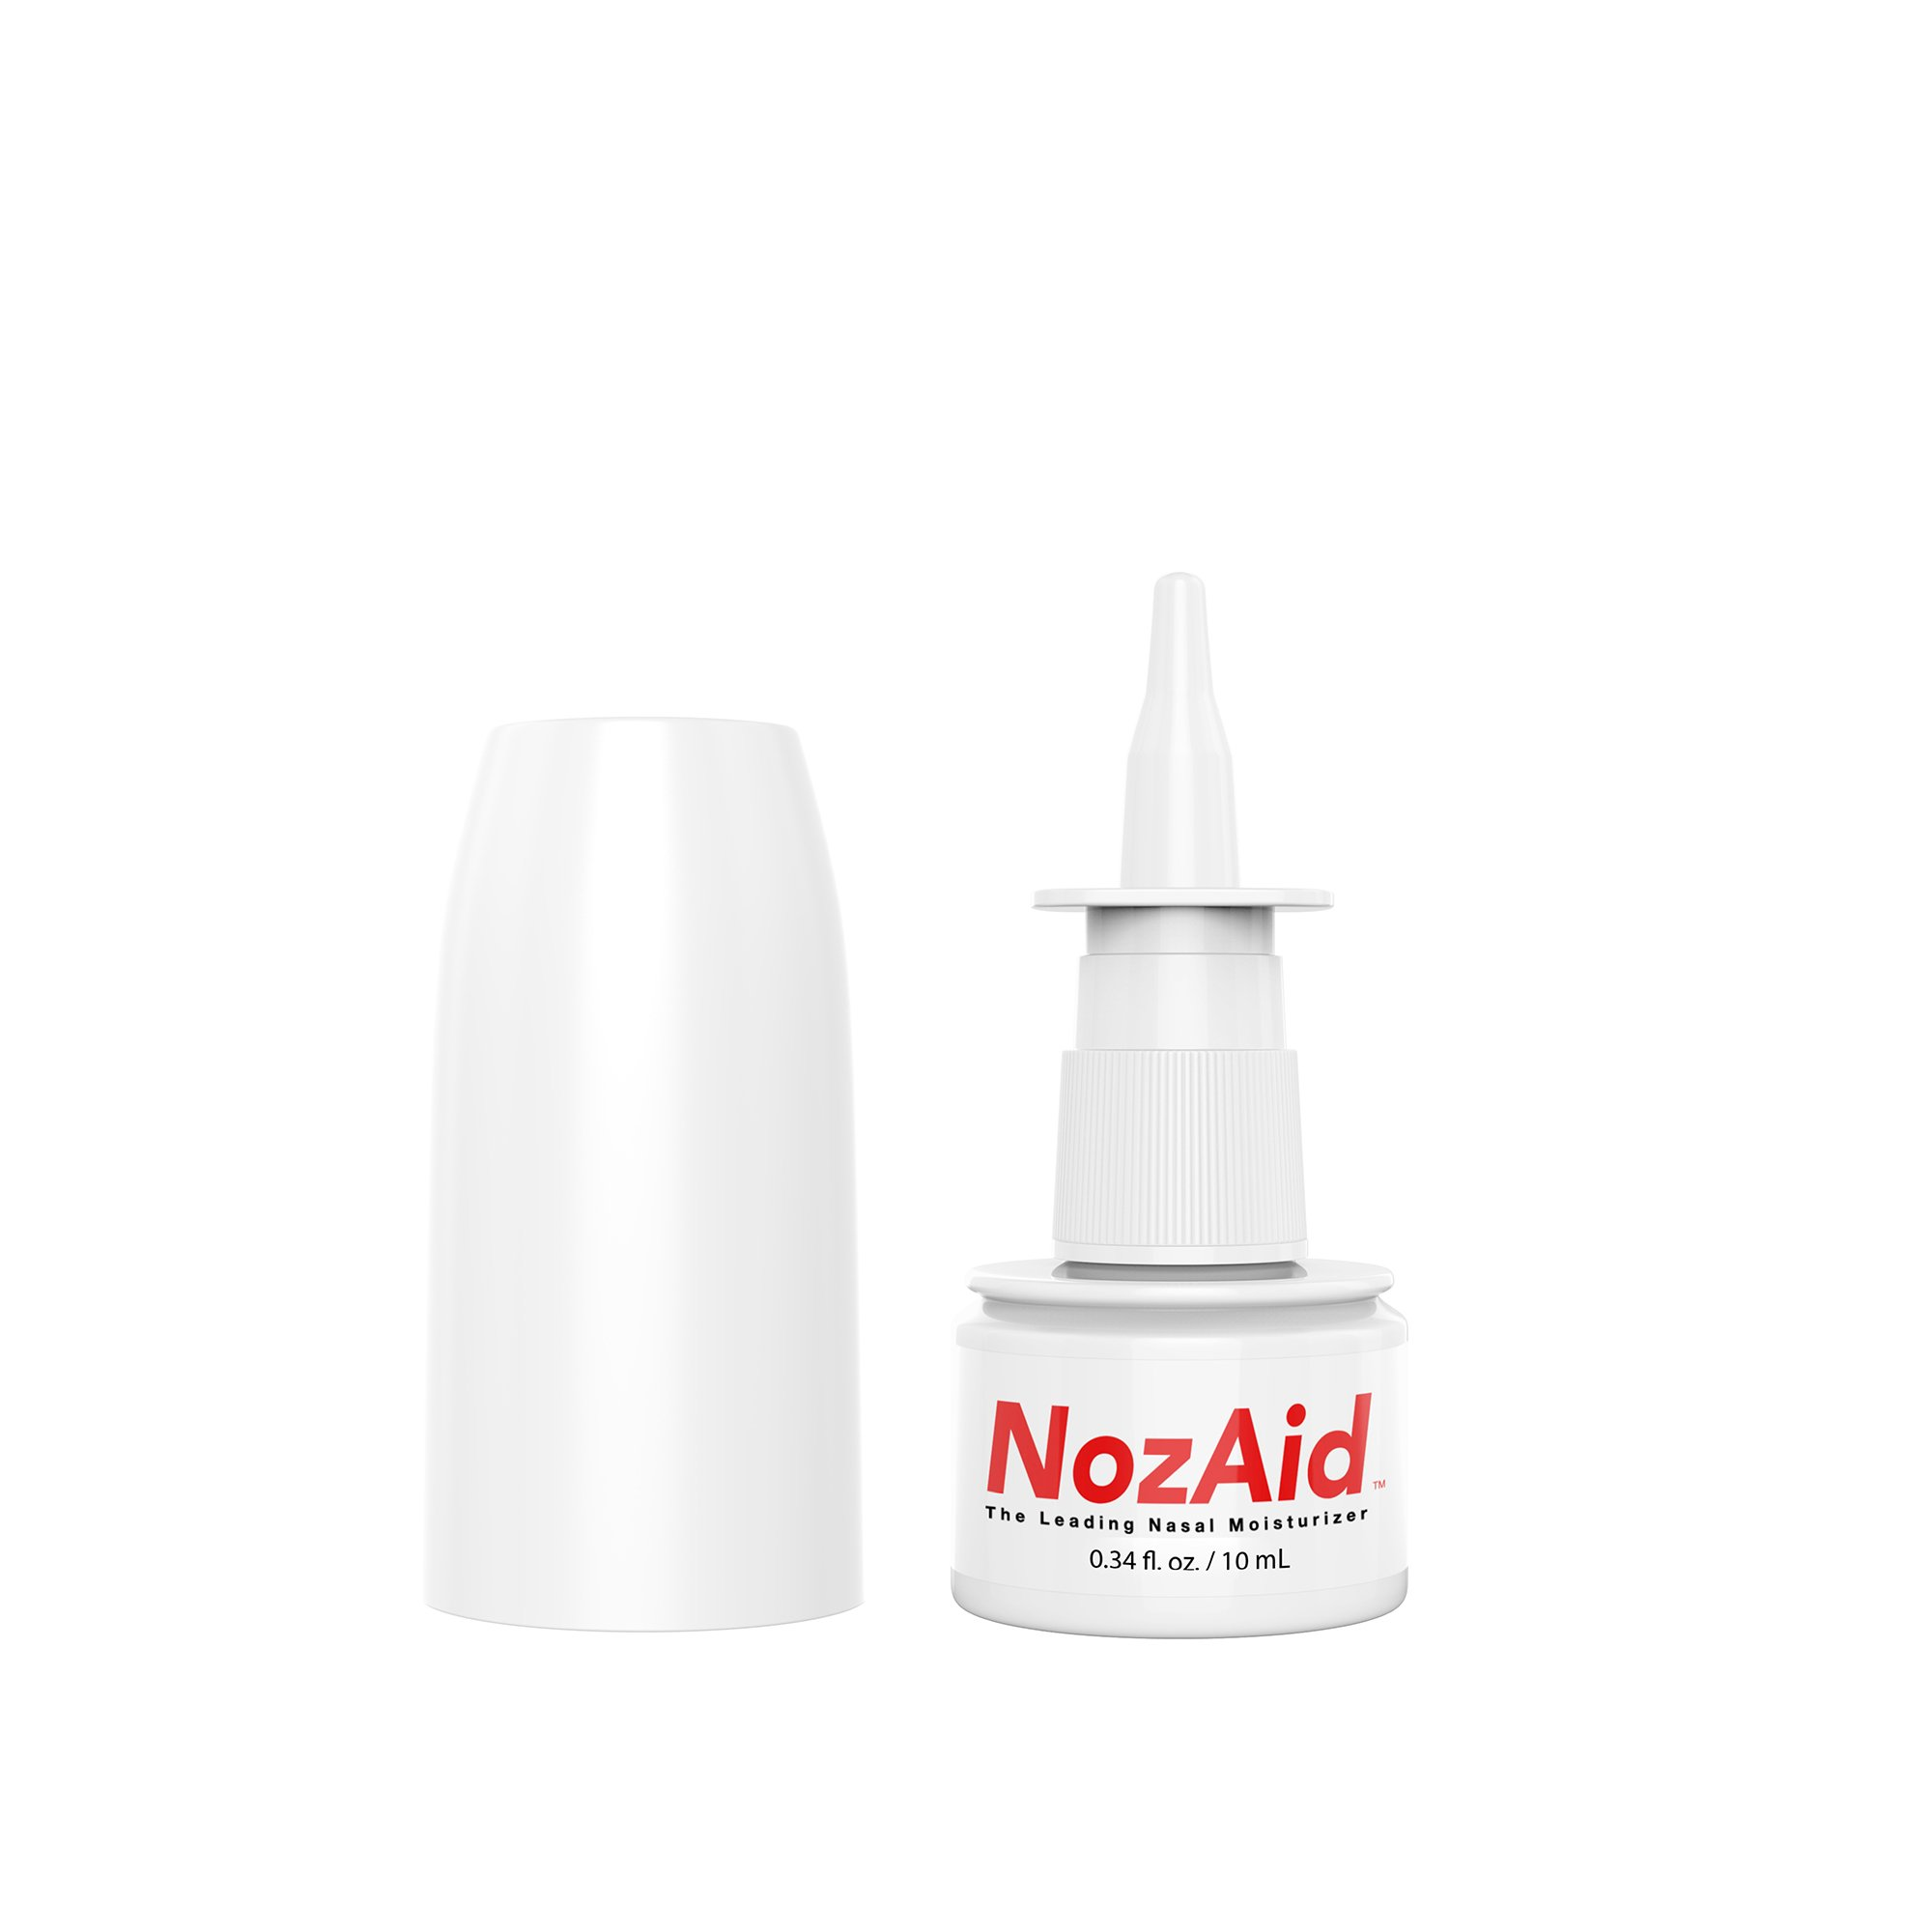 NozAid Nasal Moisturizer Spray w/Sesame Oil .34 oz Barrier to Pathogens Virus Bacteria Moisturizing Lubricant for Dry, Crusty, Cracked, Stuffy Nose Relief, Nosebleeds, Preservative Free by NozAid